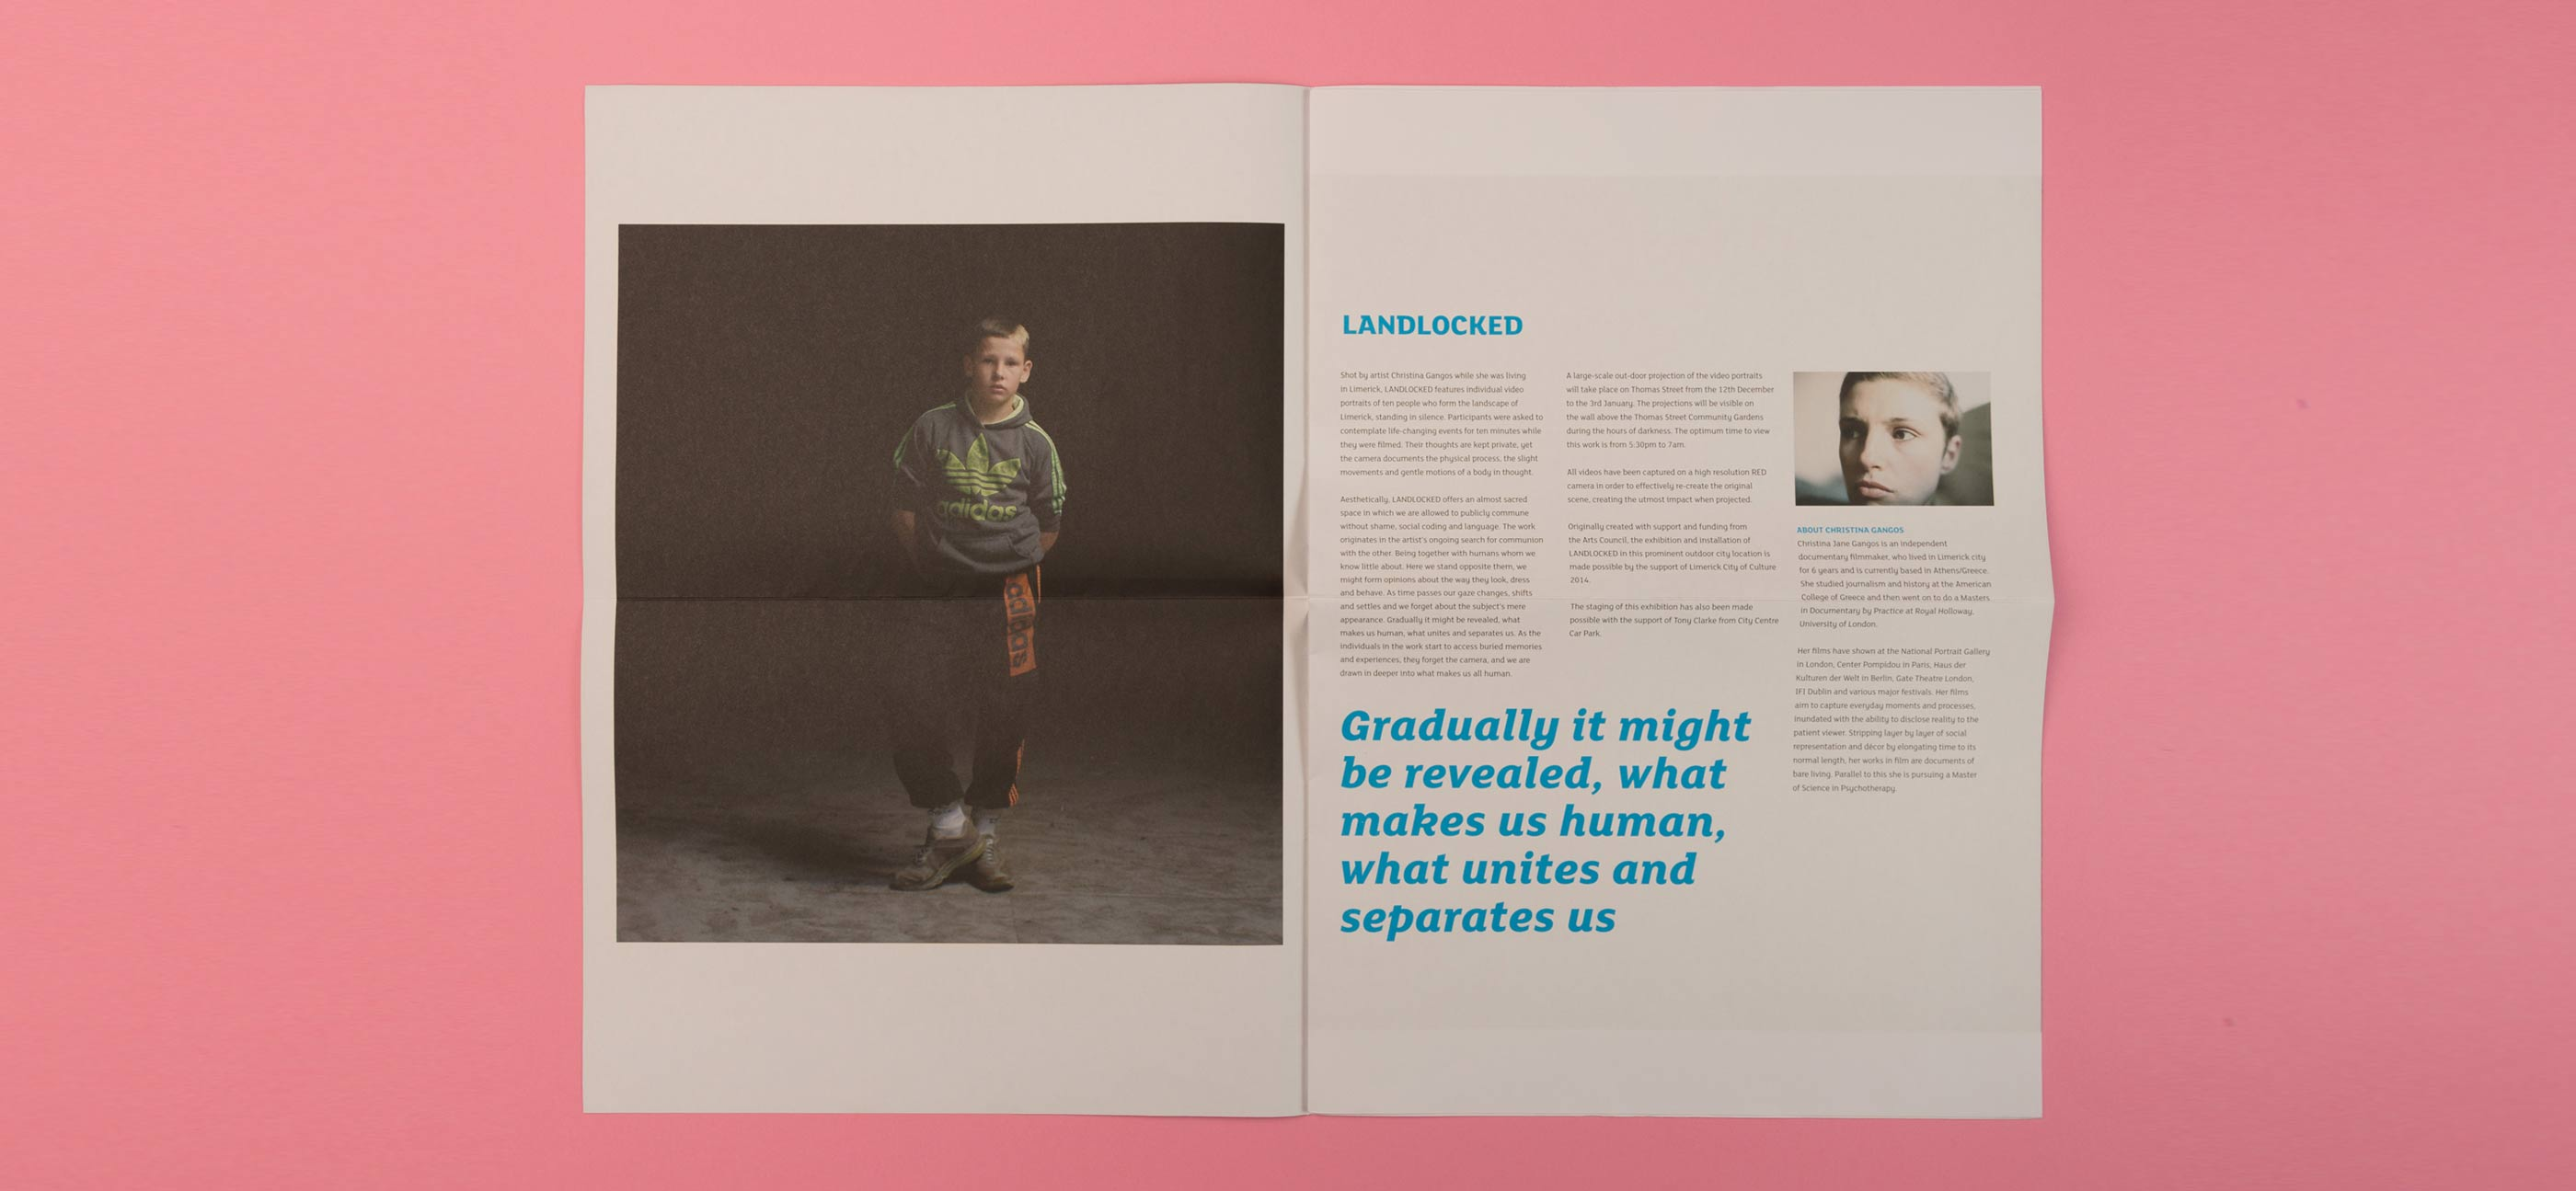 Landlocked graphic design. Spread of programme brochure featuring a young boy.